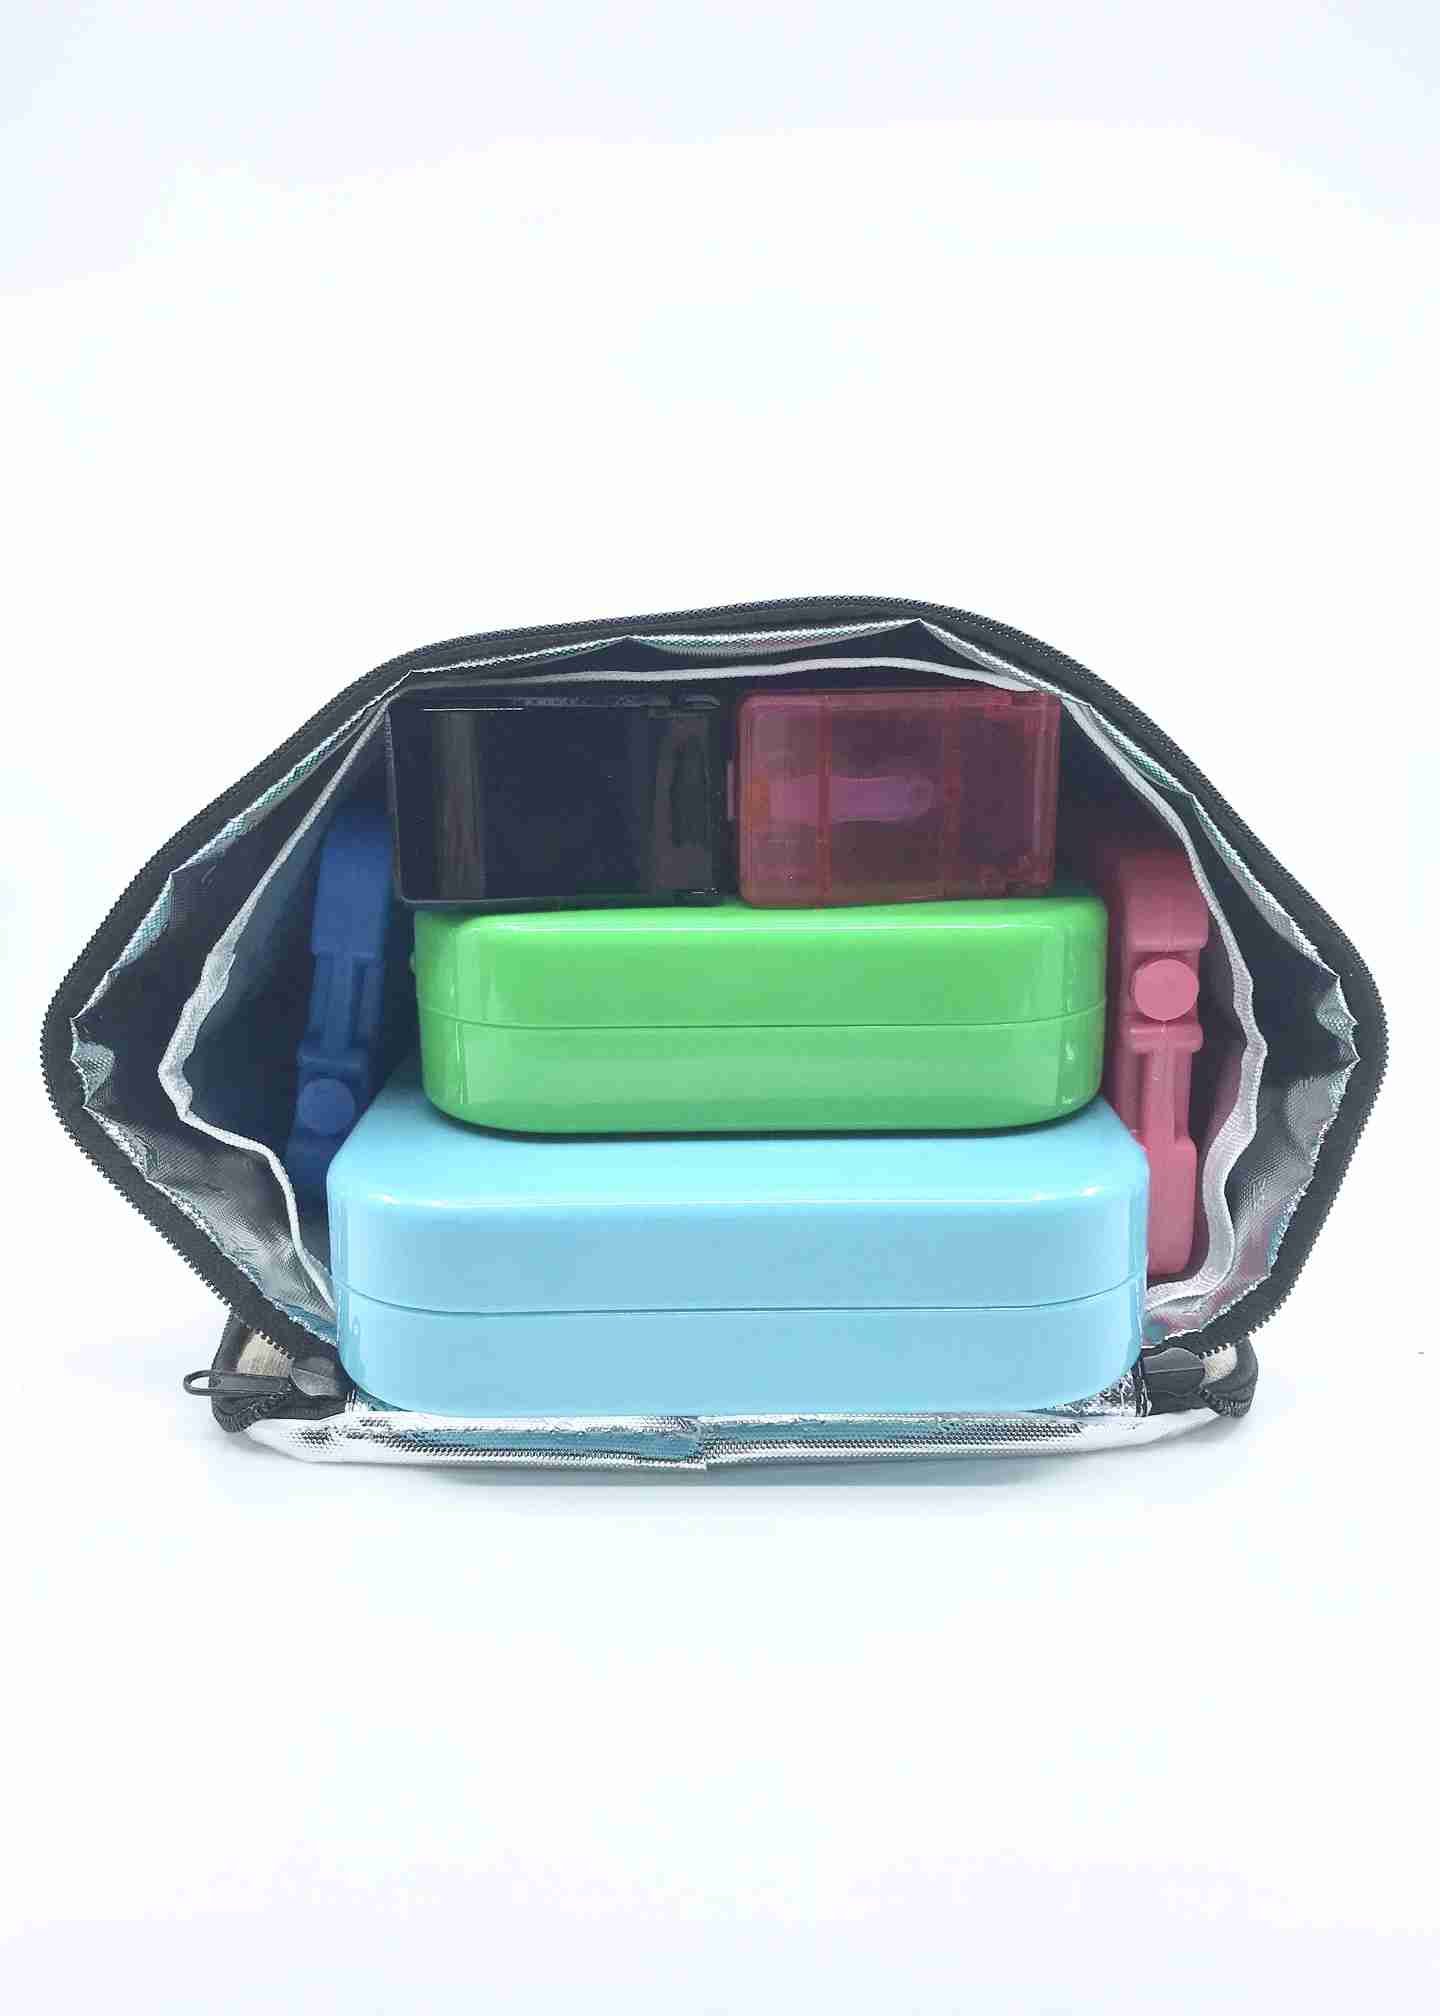 SoYoung Large Cooler Bag - Packing Example